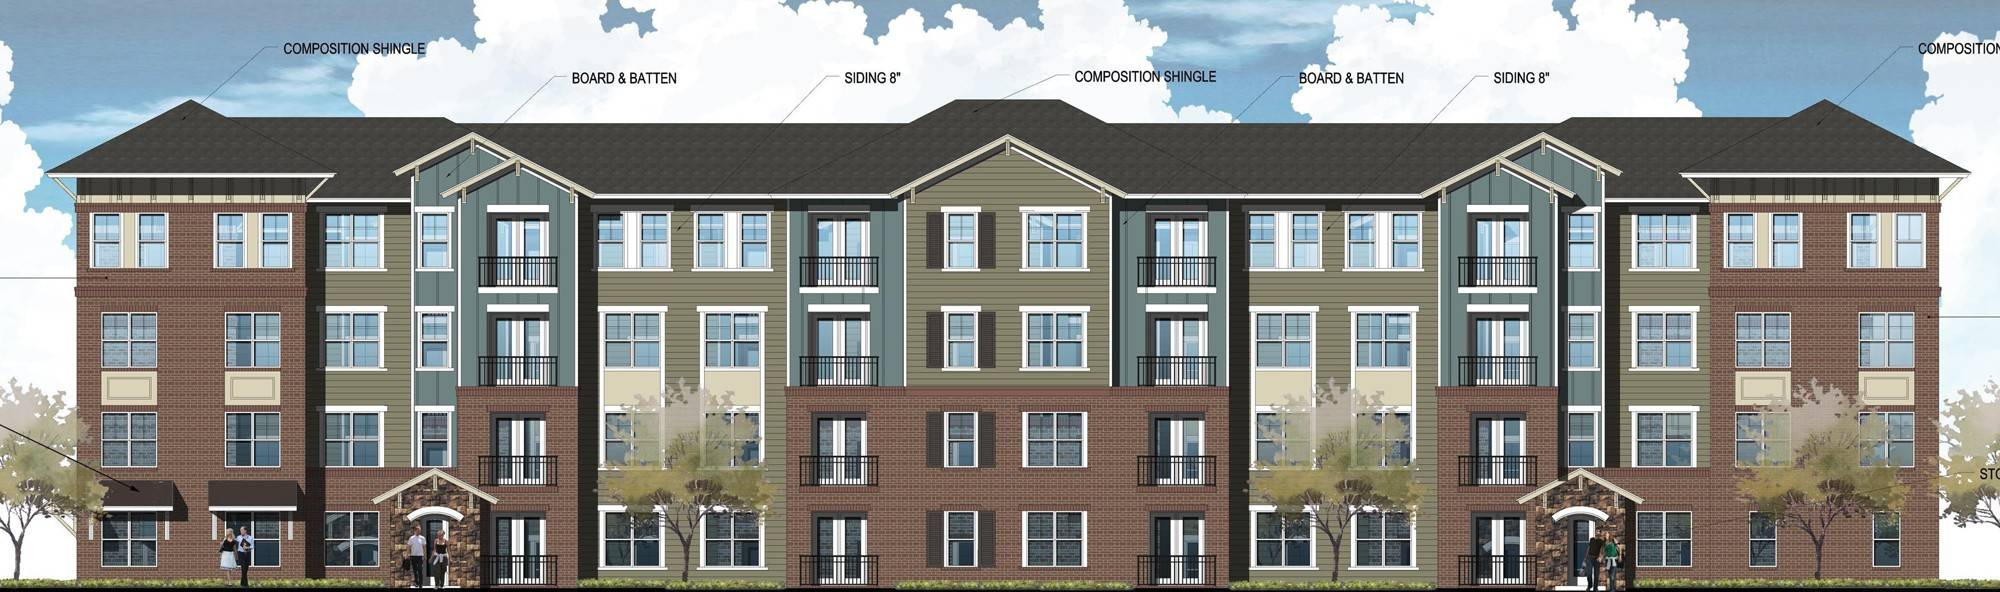 Will Schaumburg OK new apartment parking plan?